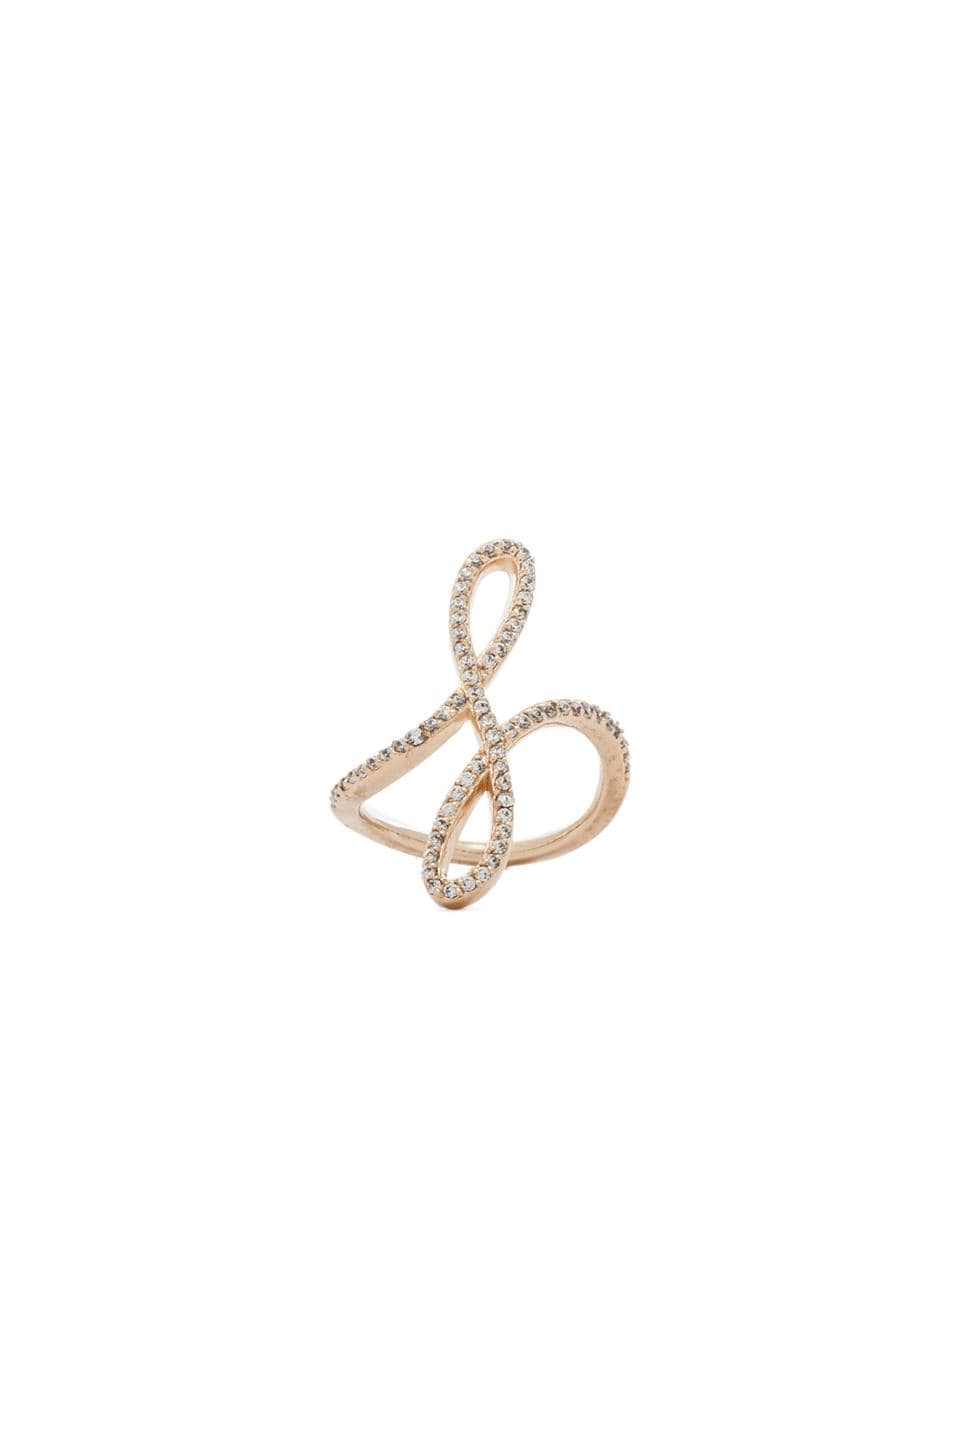 Nicole Meng Helix Ring in Gold